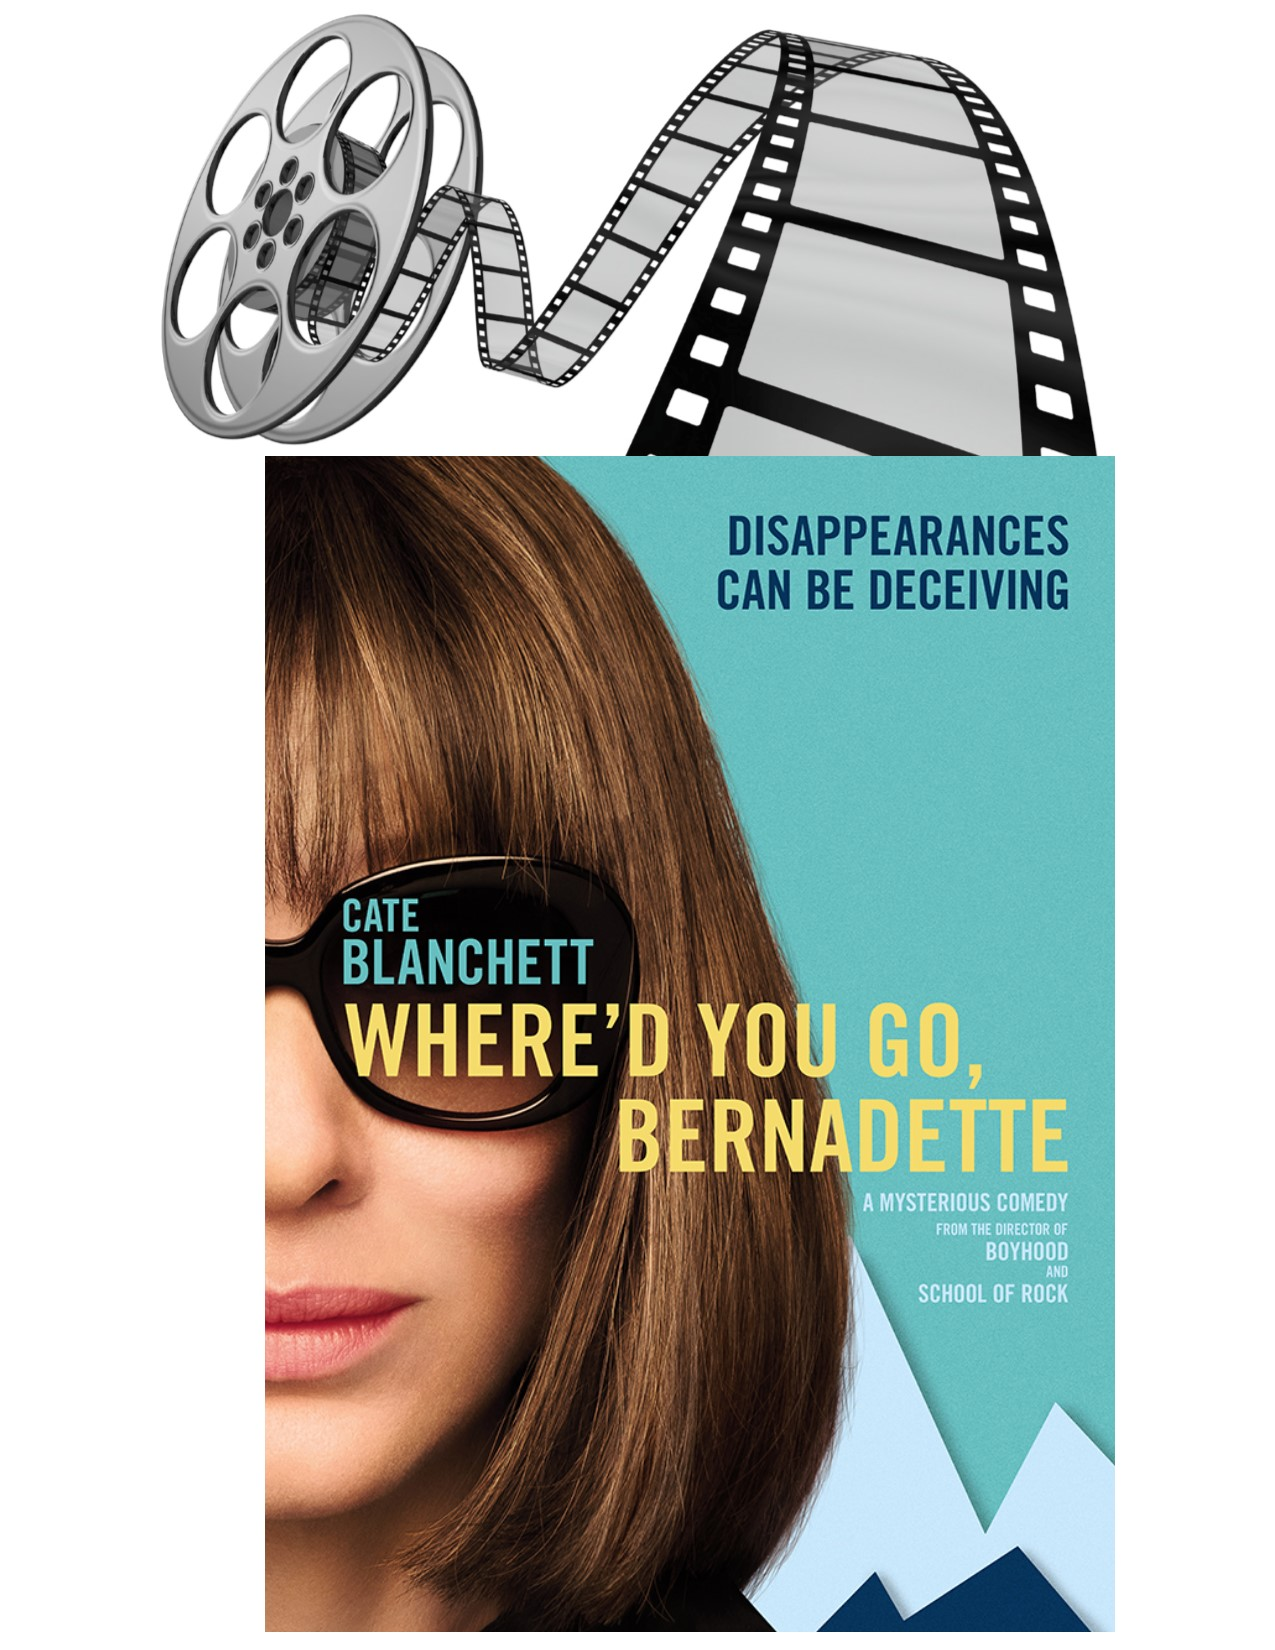 New Movie Thursday: Where'd You Go, Bernadette (2019)